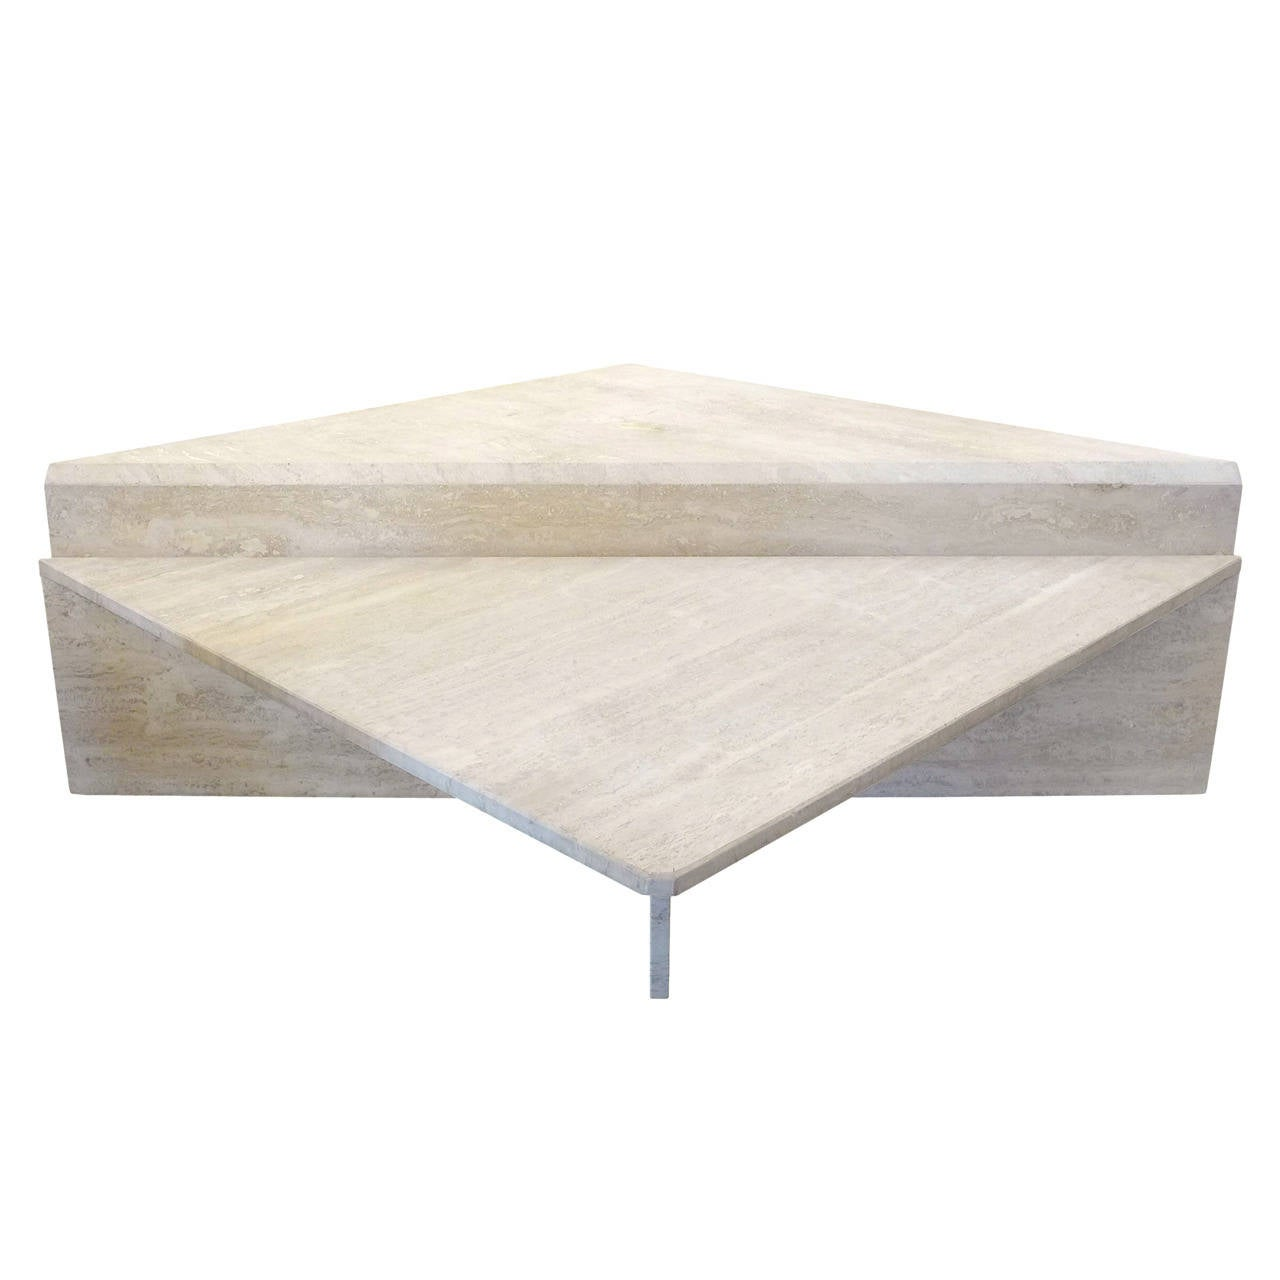 Two-Piece Modular Travertine Coffee Table at 1stdibs